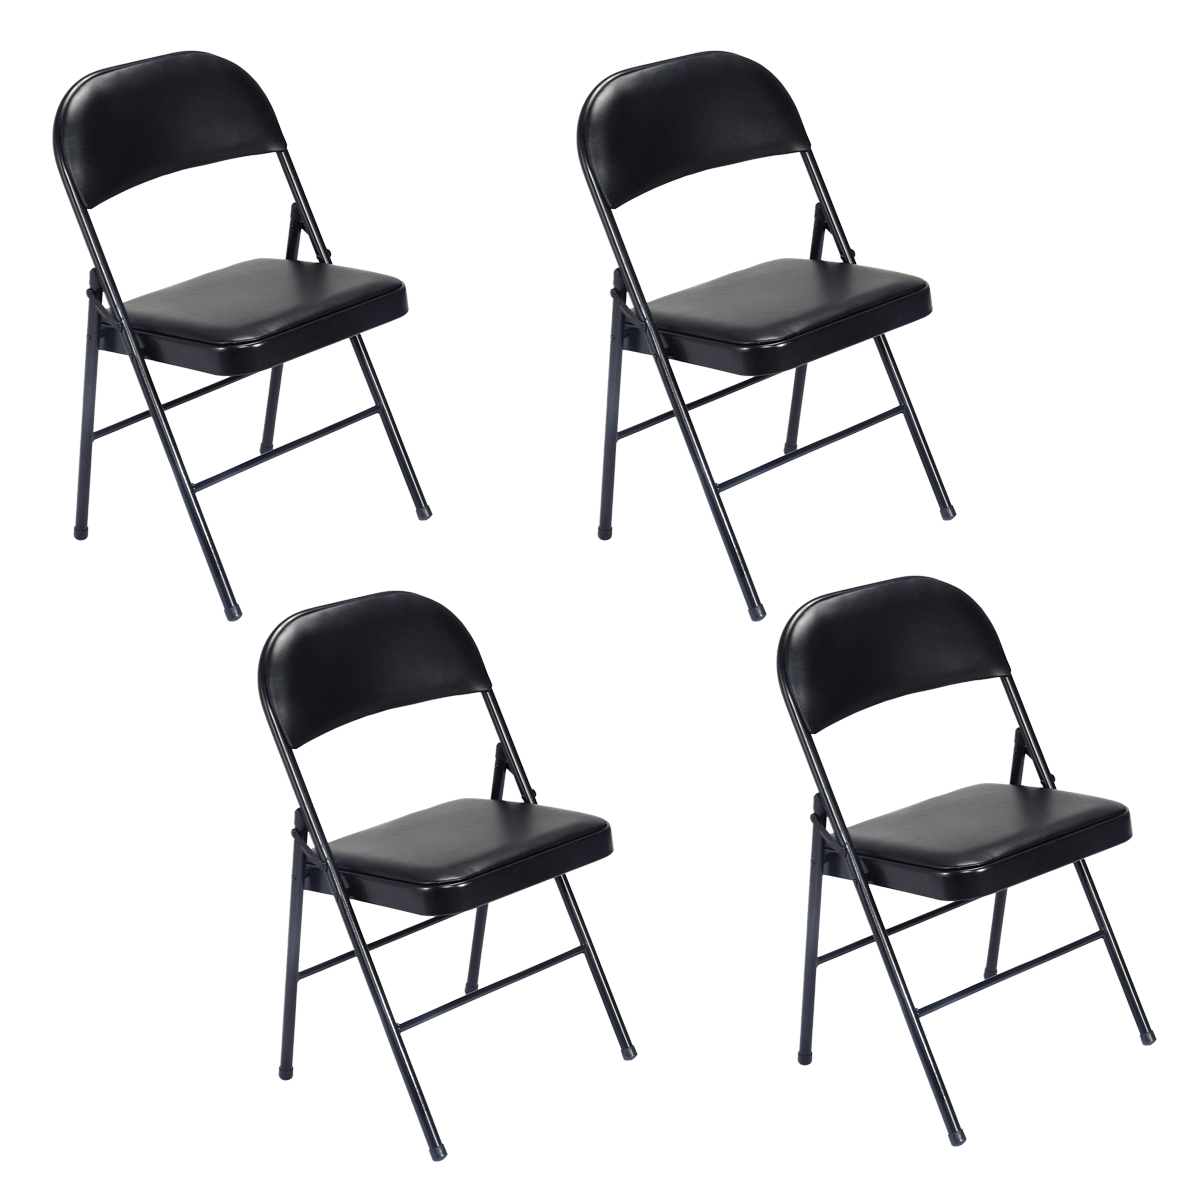 Details About 4 Fabric Folding Chair Black Soft Padded Seat Compact Steel  Back Strong Dinning